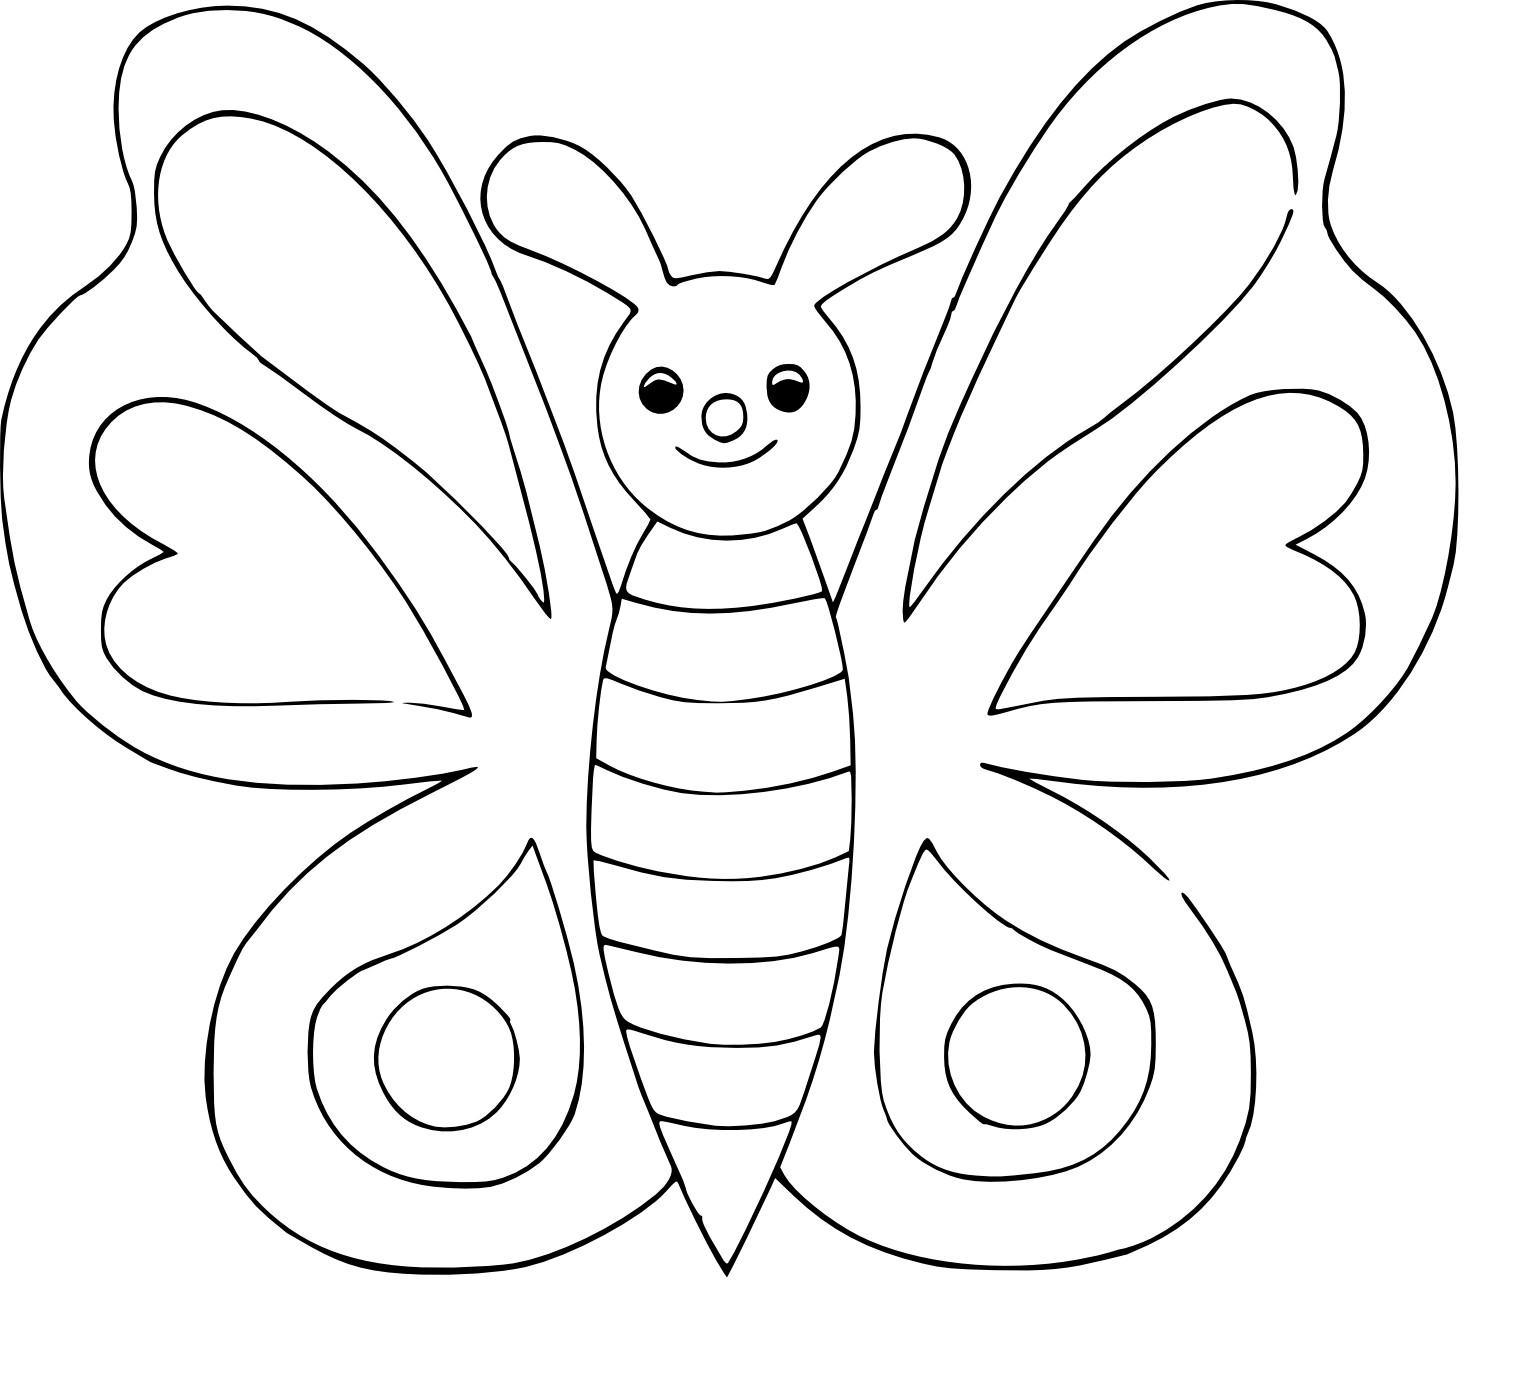 Coloriage Papillon Simple À Imprimer pour Dessin Papillon À Colorier